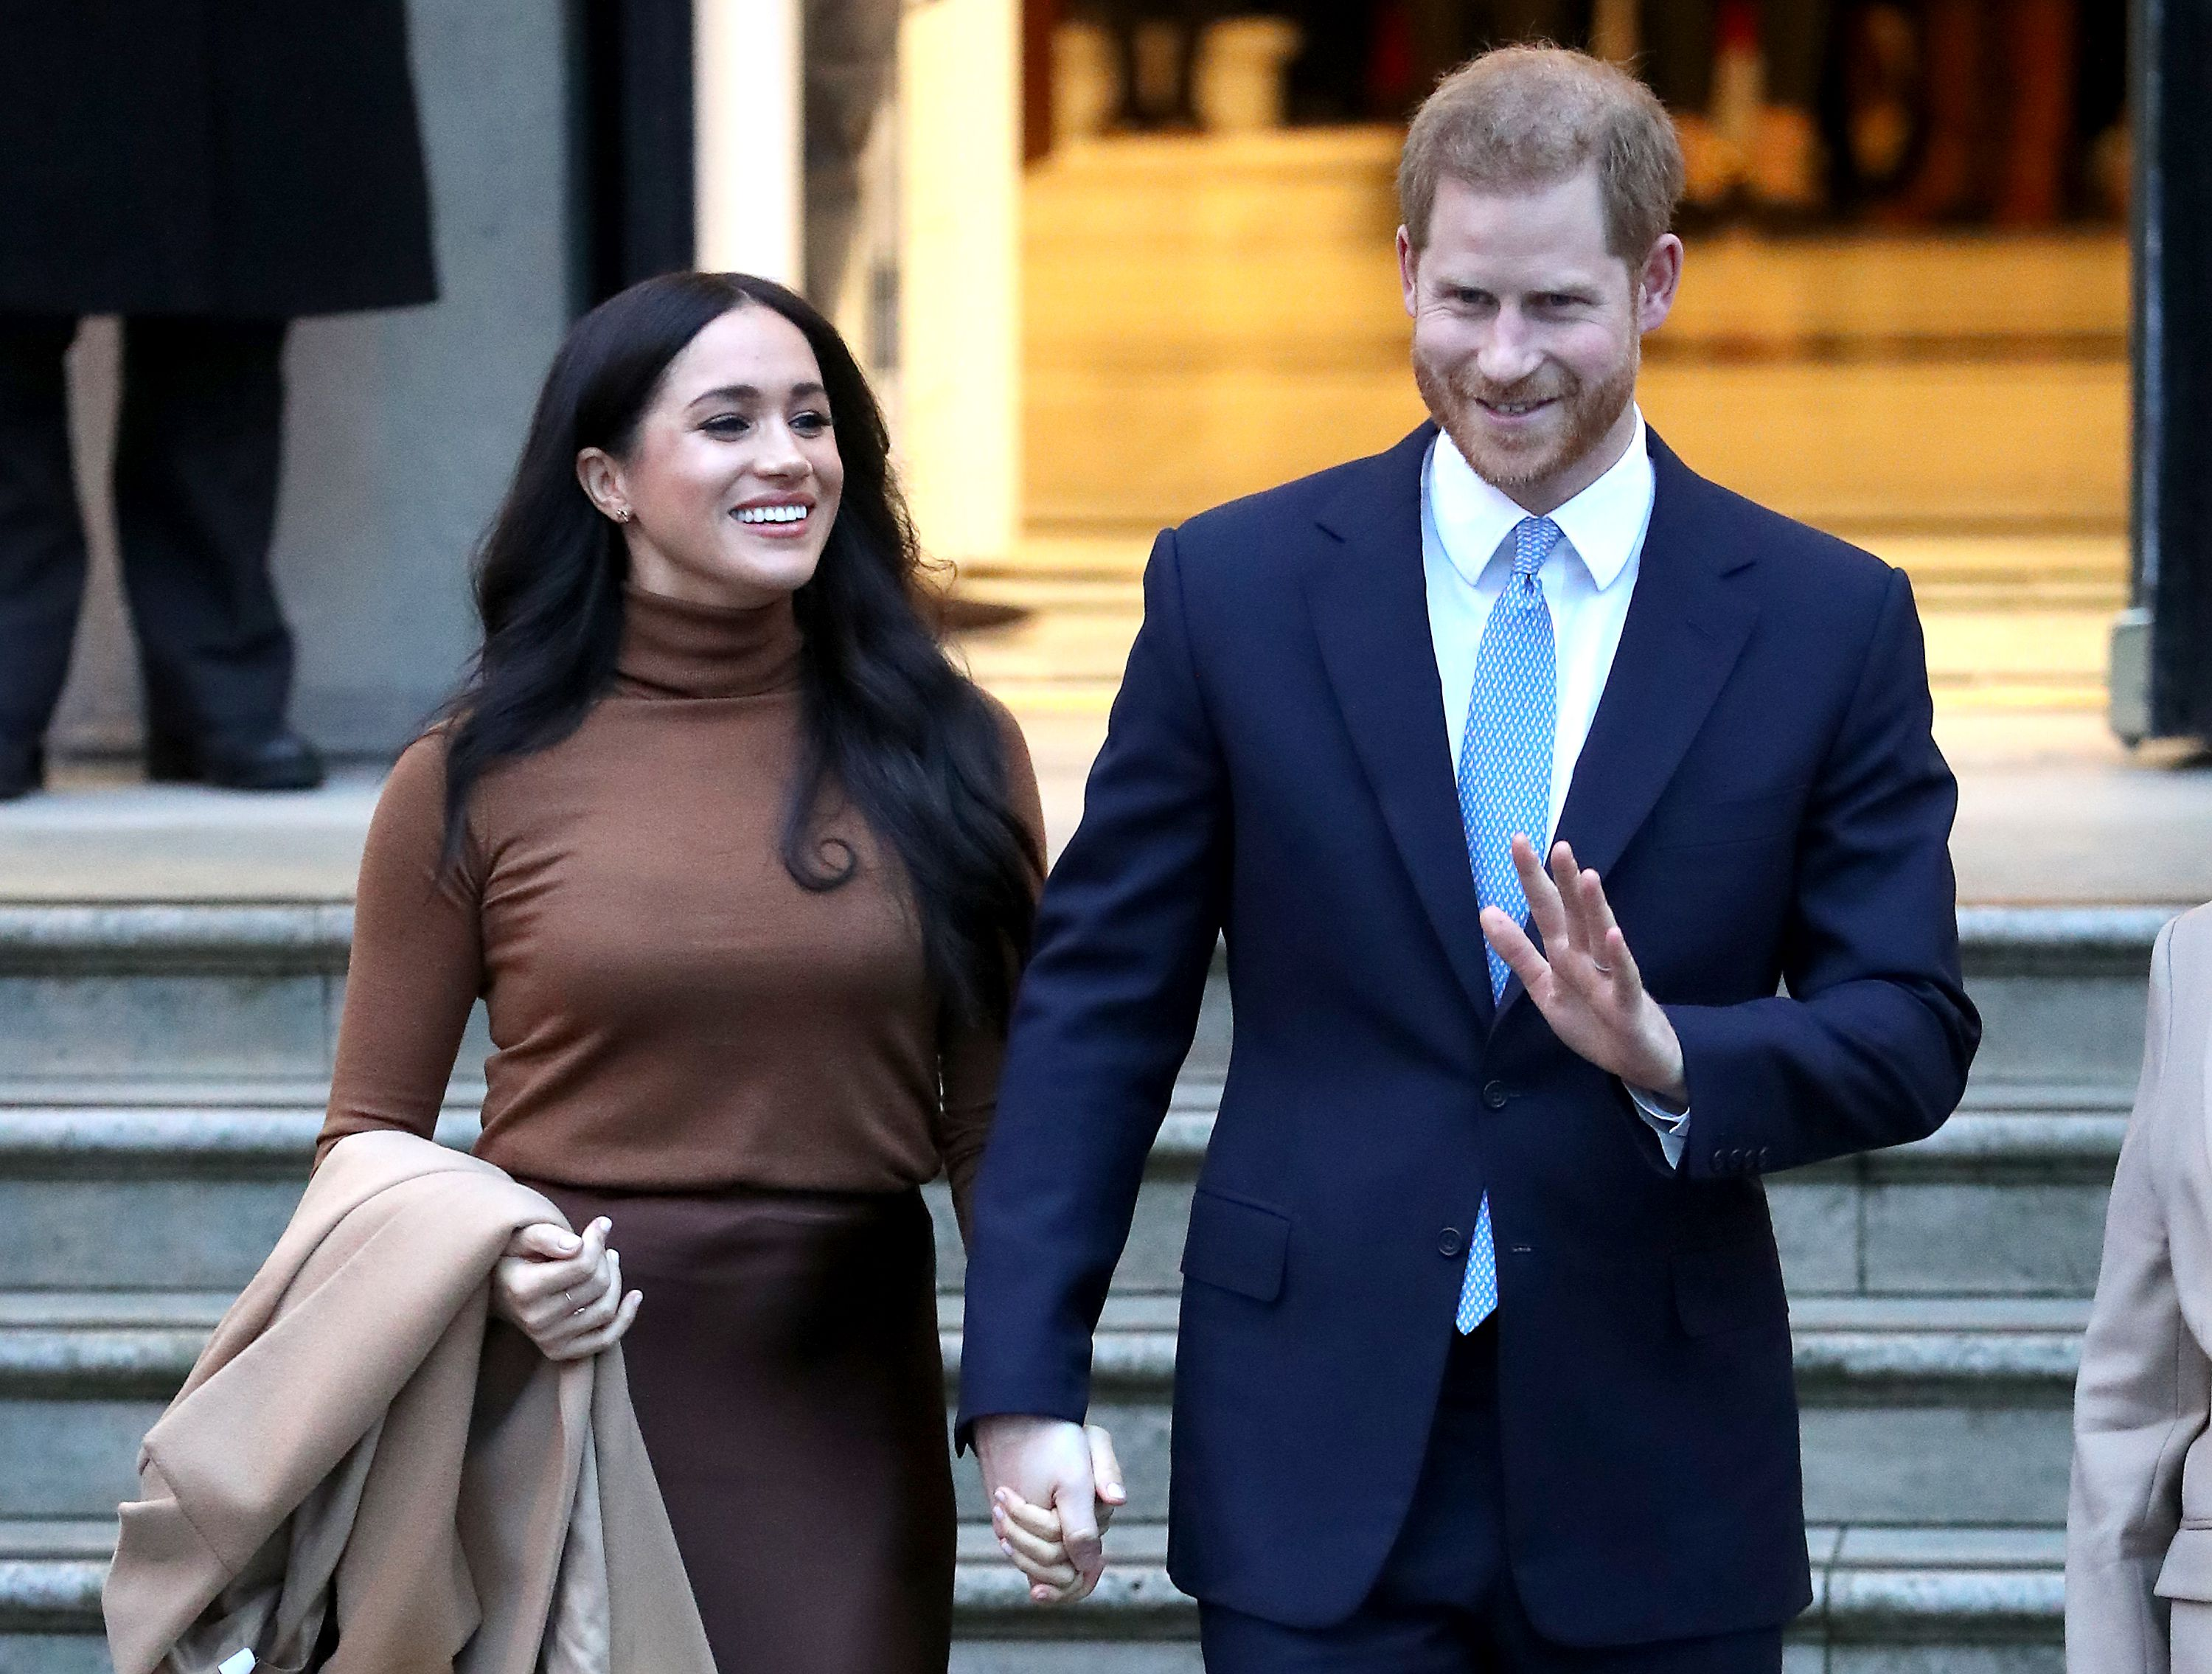 Prince Harry and Meghan Markle make first appearance since royal departure - Axios